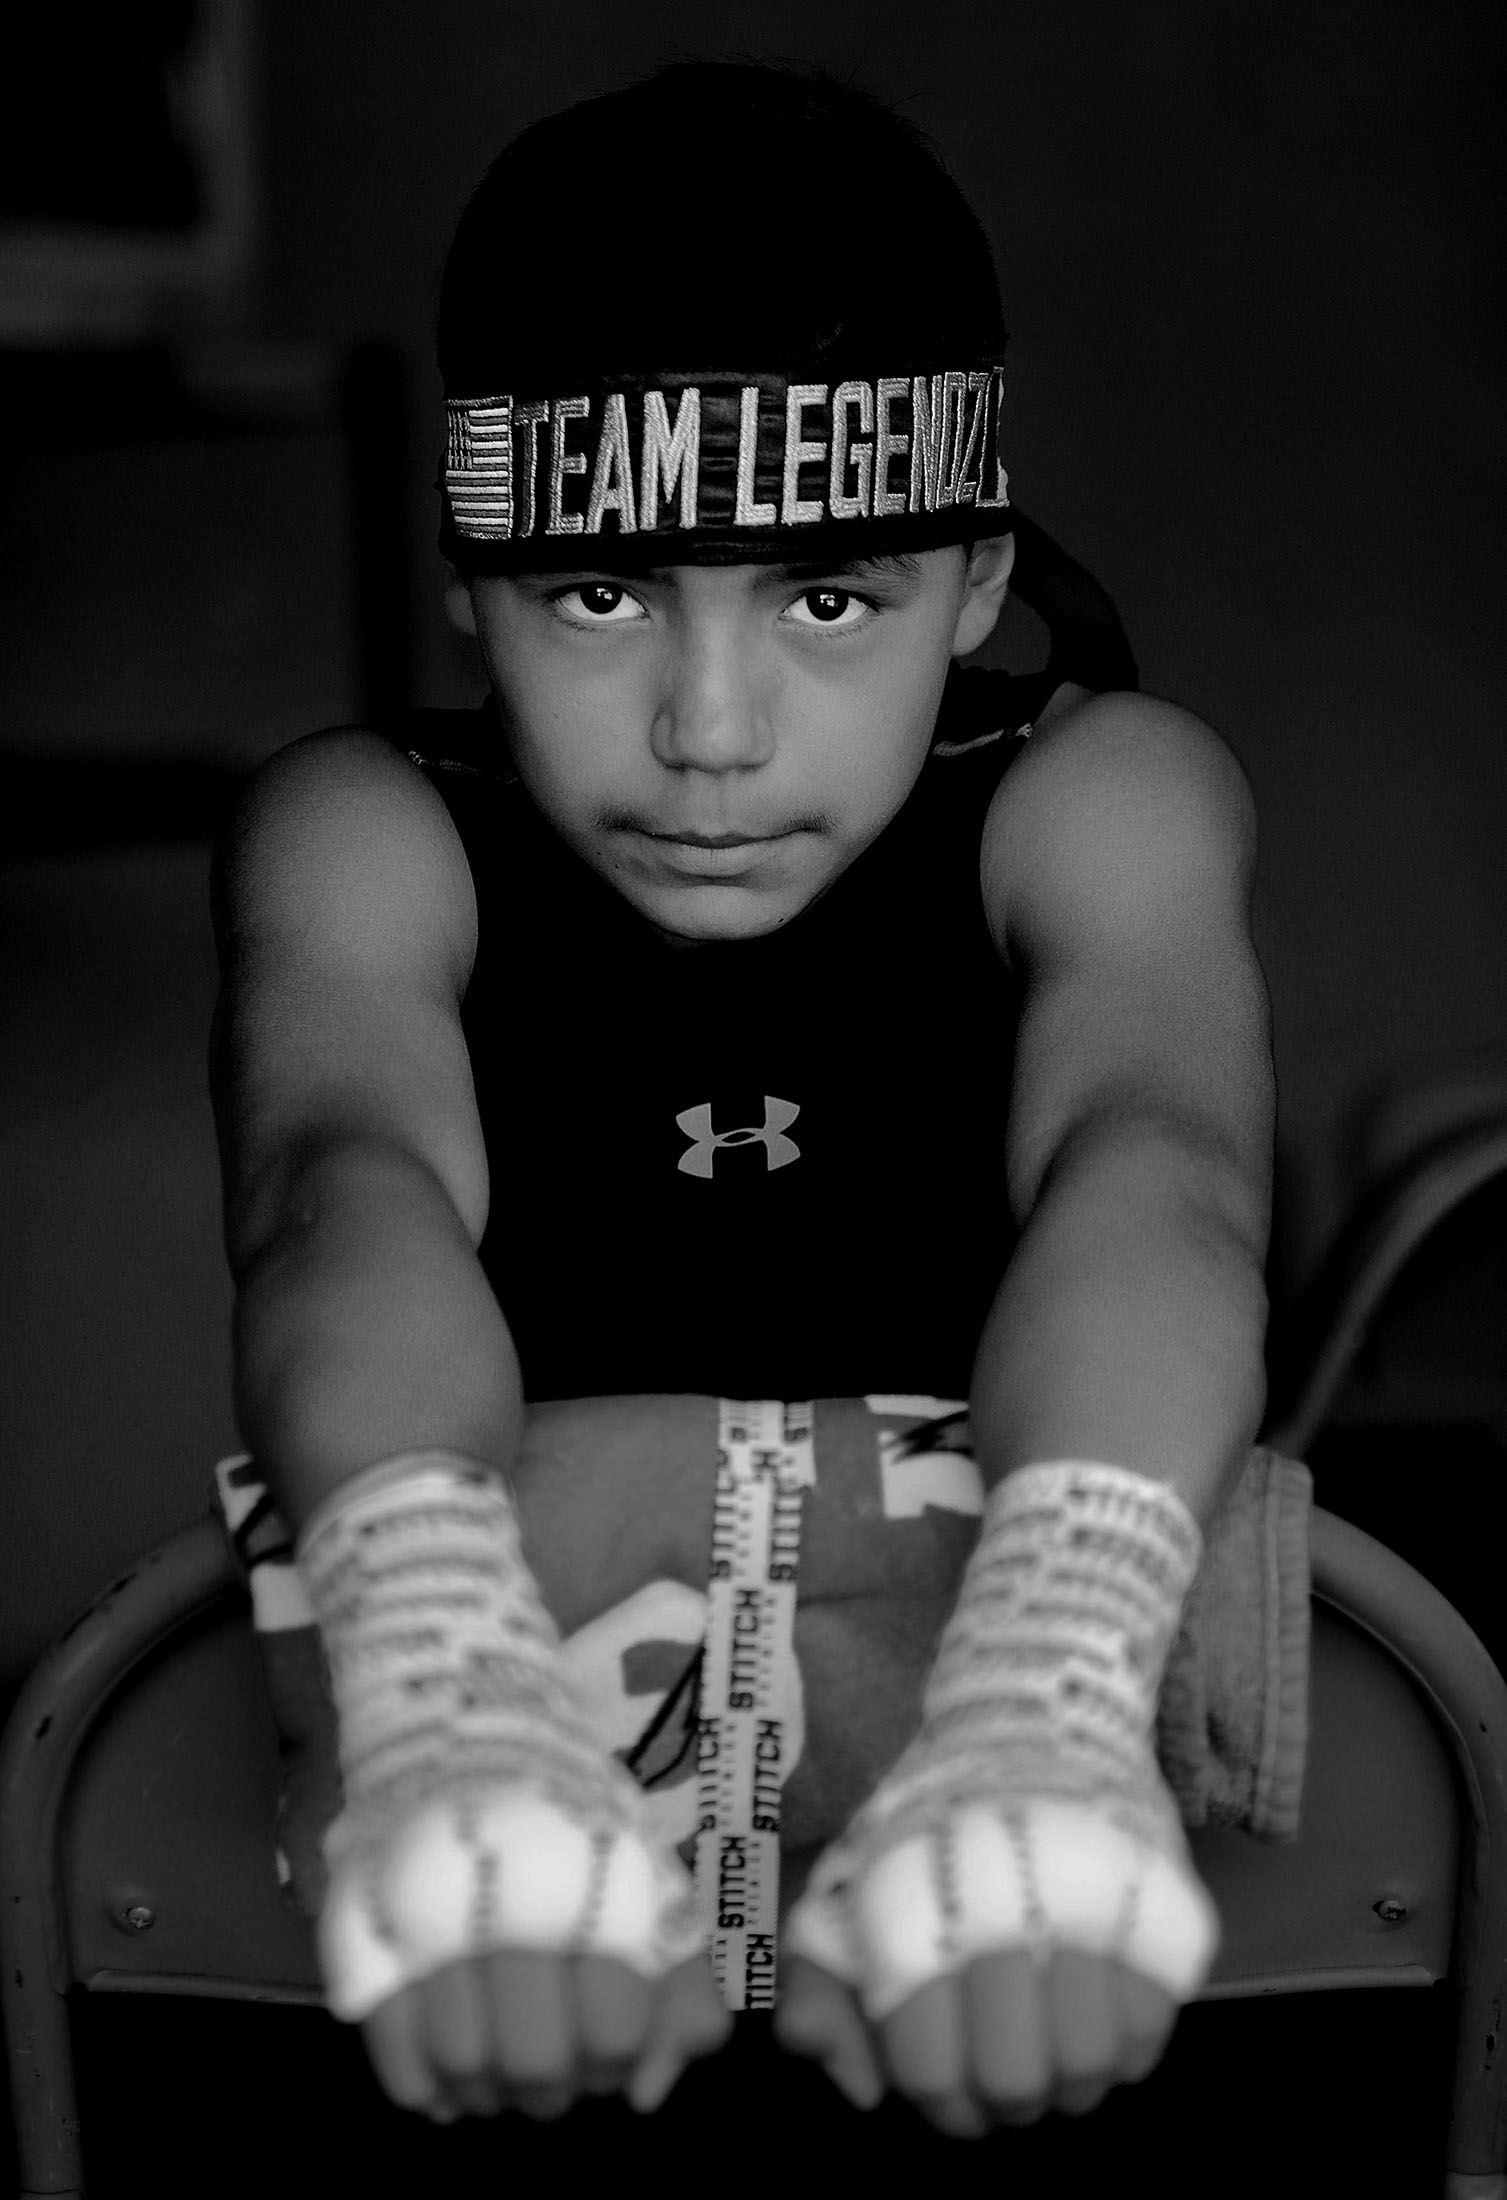 Team Legendz Boxing Club's Jonathan Trevino, 12, of San Jose is taped and ready to box in the first of 21 bouts of the day during the Future Olympics Champions at Lake Perris Sports Pavilion in Perris on Saturday, August 18, 2018.